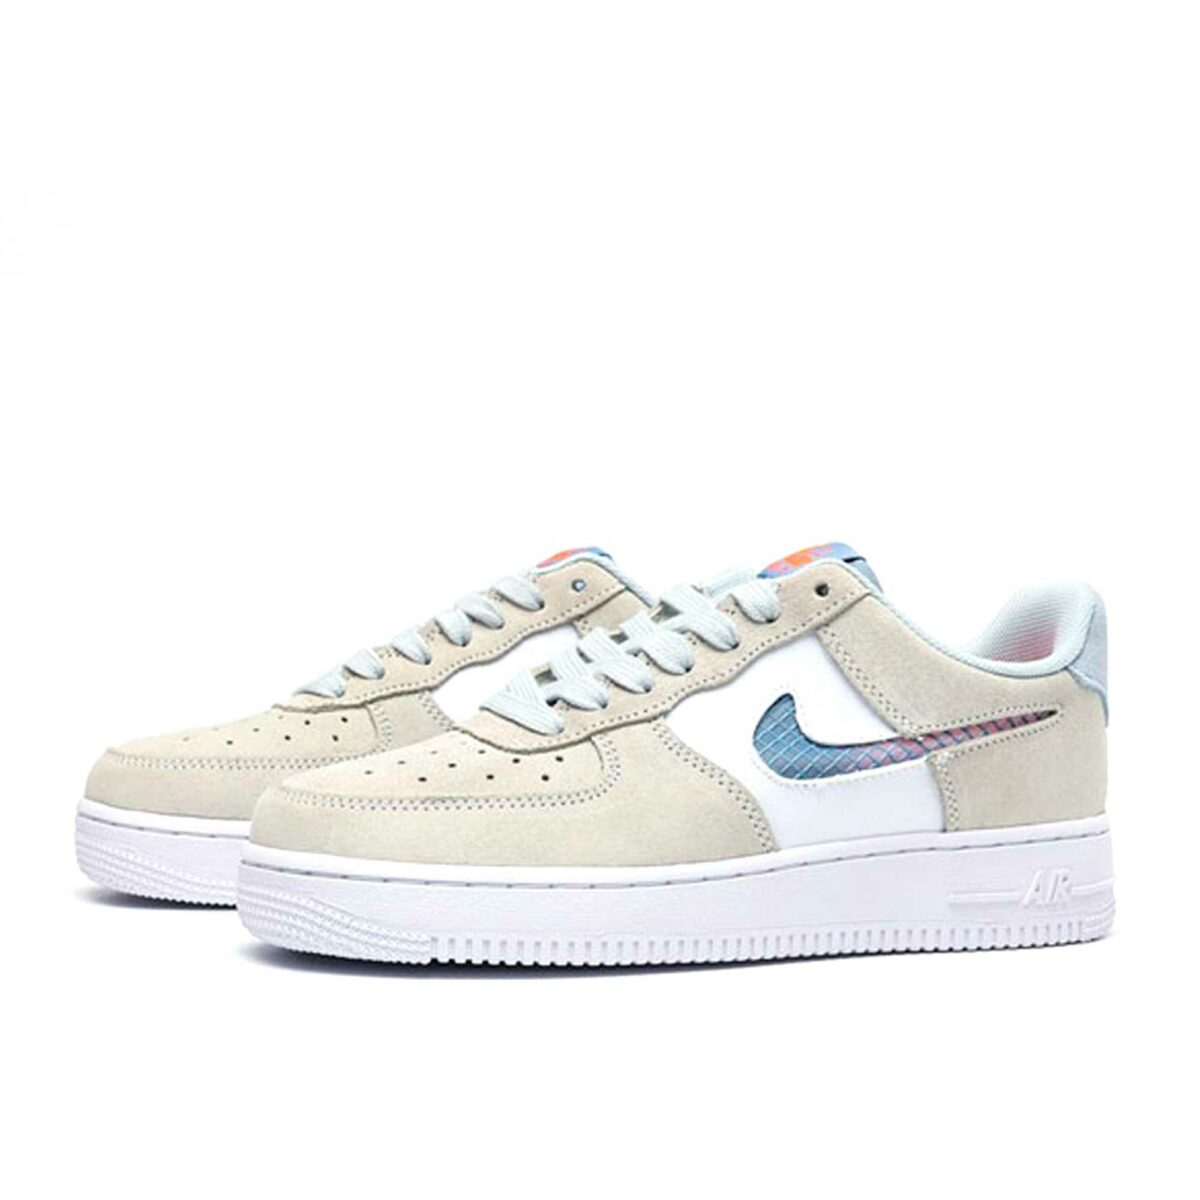 Nike Air Force 1 Low Couple Cj4093_001 купить